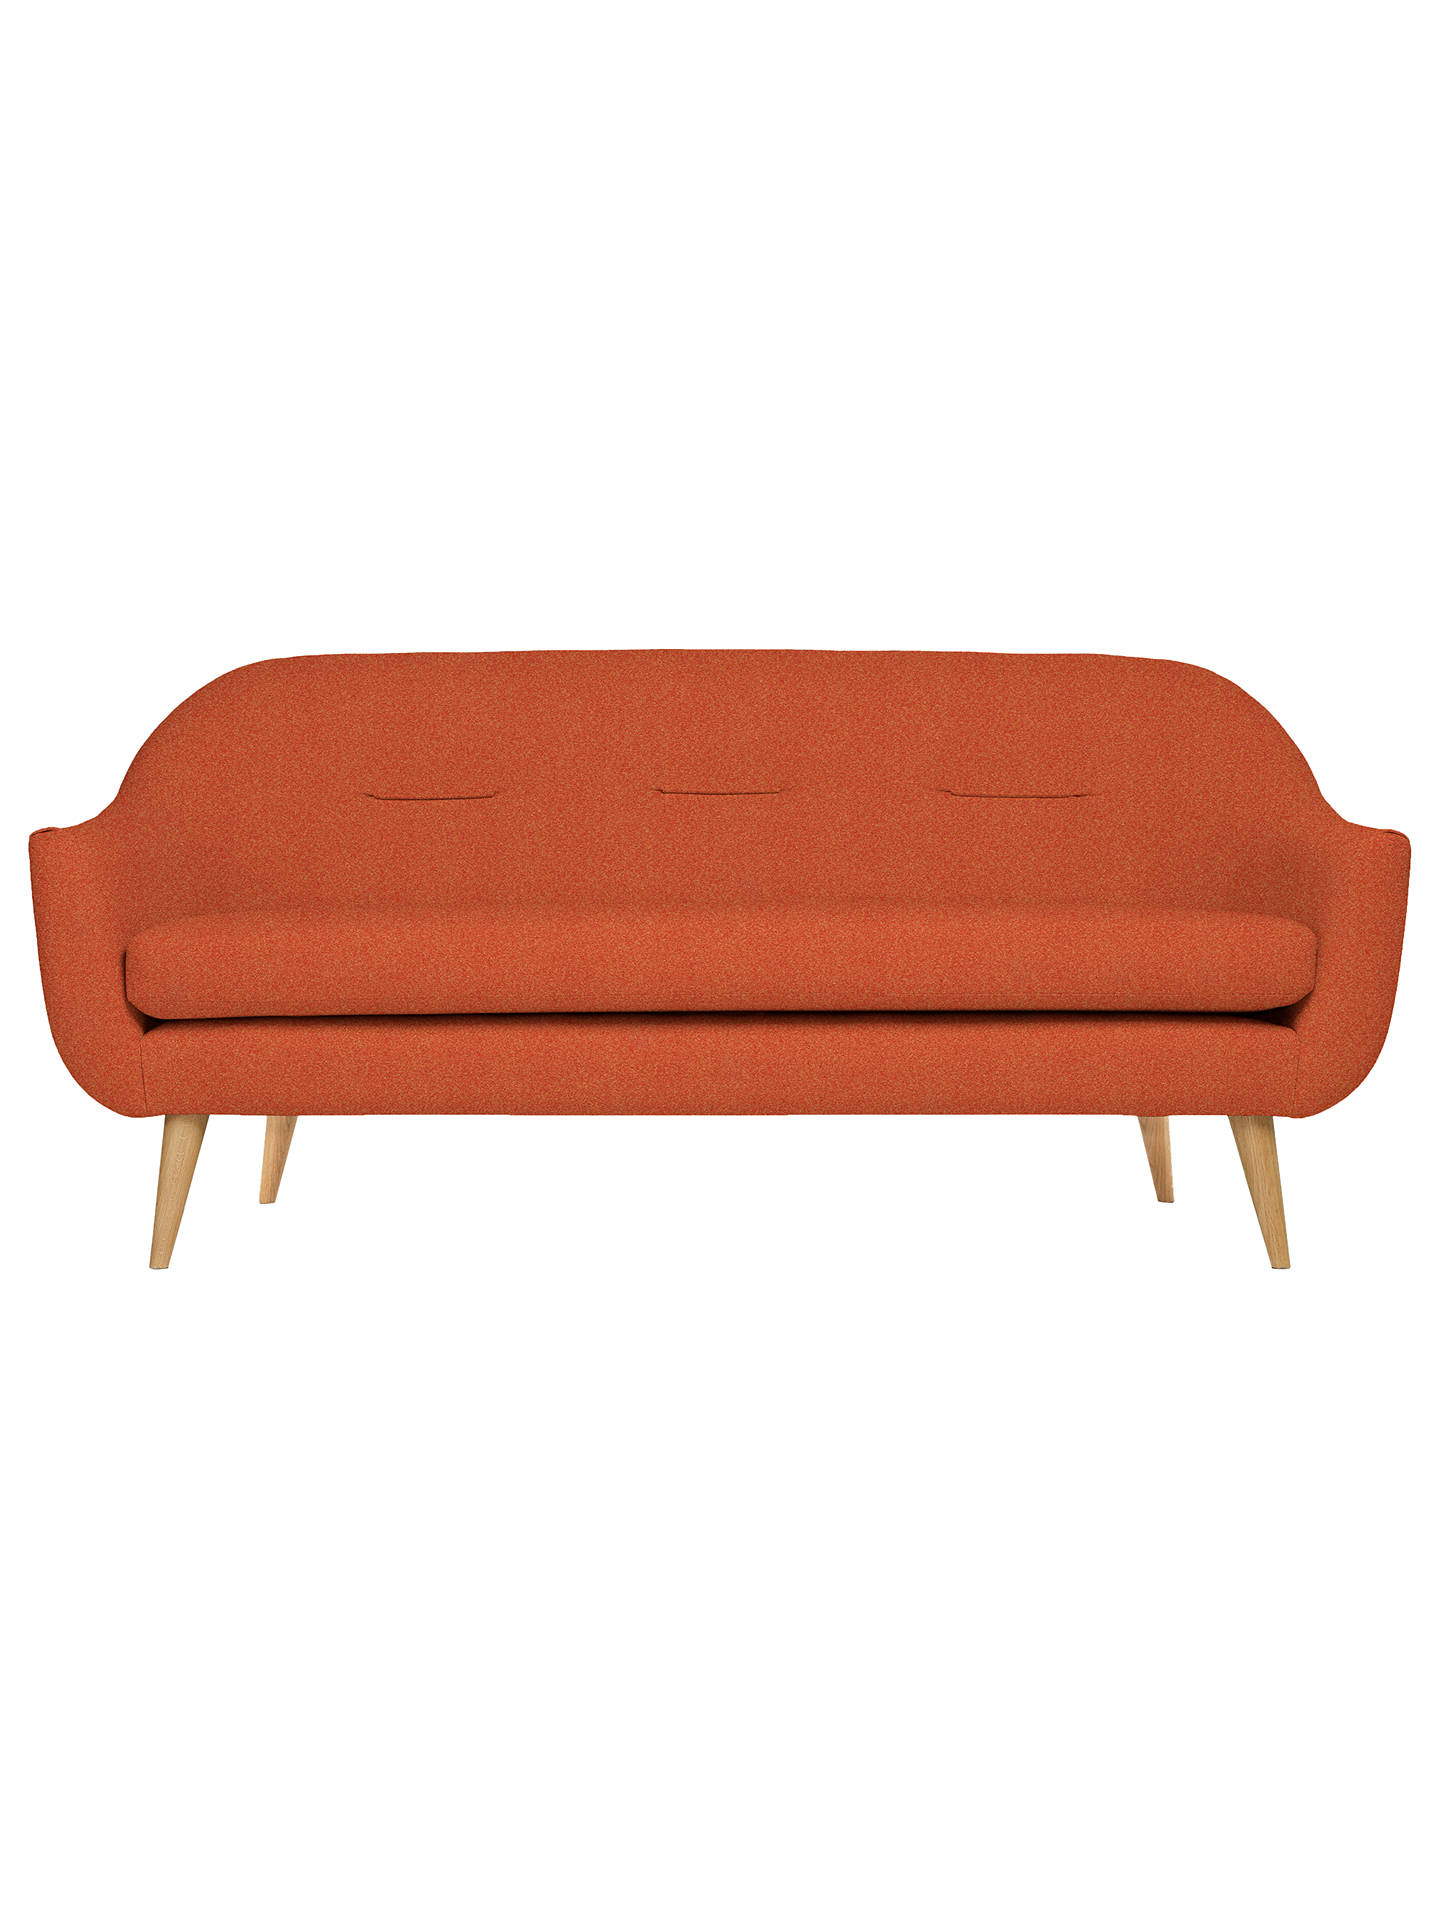 Buy Content by Terence Conran Marlowe Large 3 Seater Sofa, Rowan Orange Online at johnlewis.com